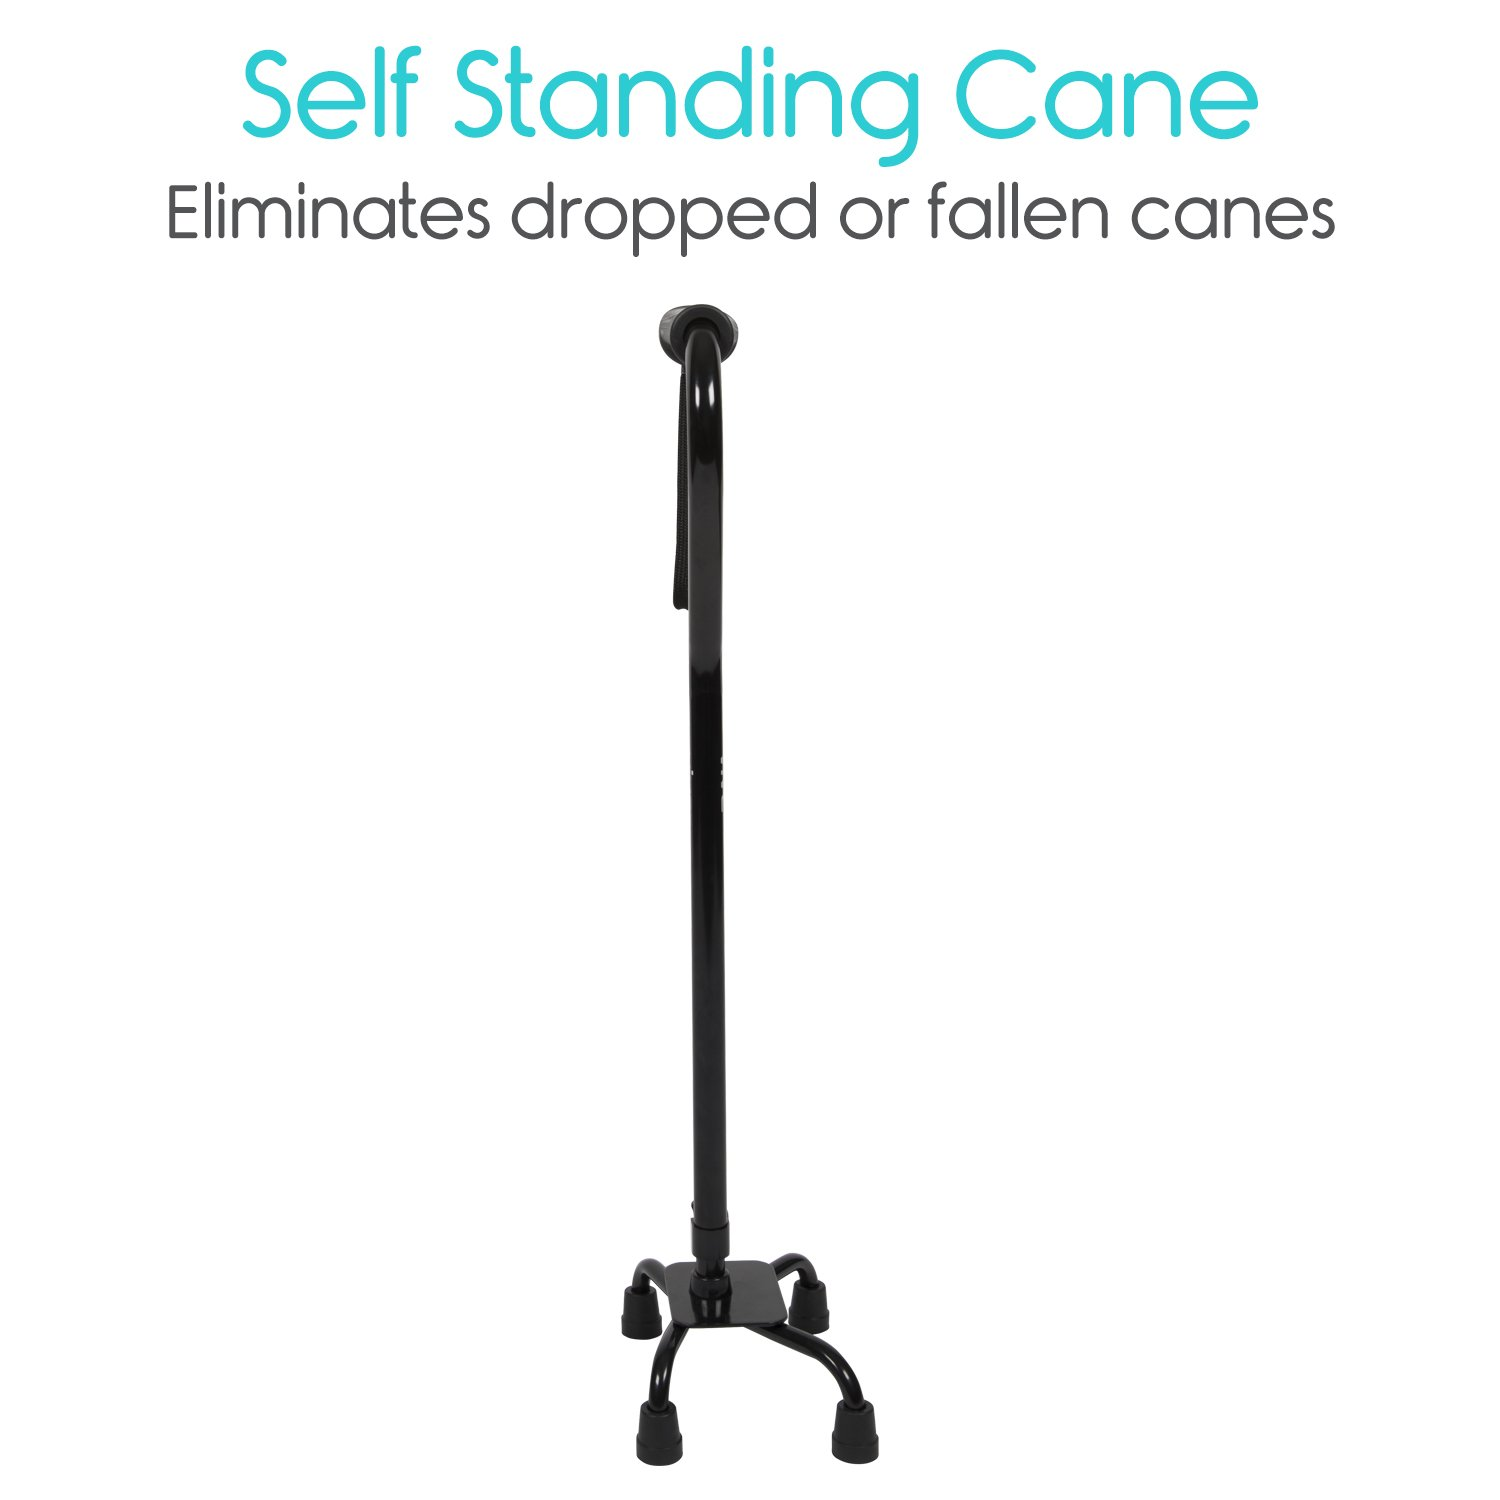 Adjustable Quad Cane by Vive - Lightweight Walking Stick for Men and Women - Walking Staff Can Be Used By Right- or Left-Handed Individuals - Fashionable and Sturdy (Black) by VIVE (Image #3)